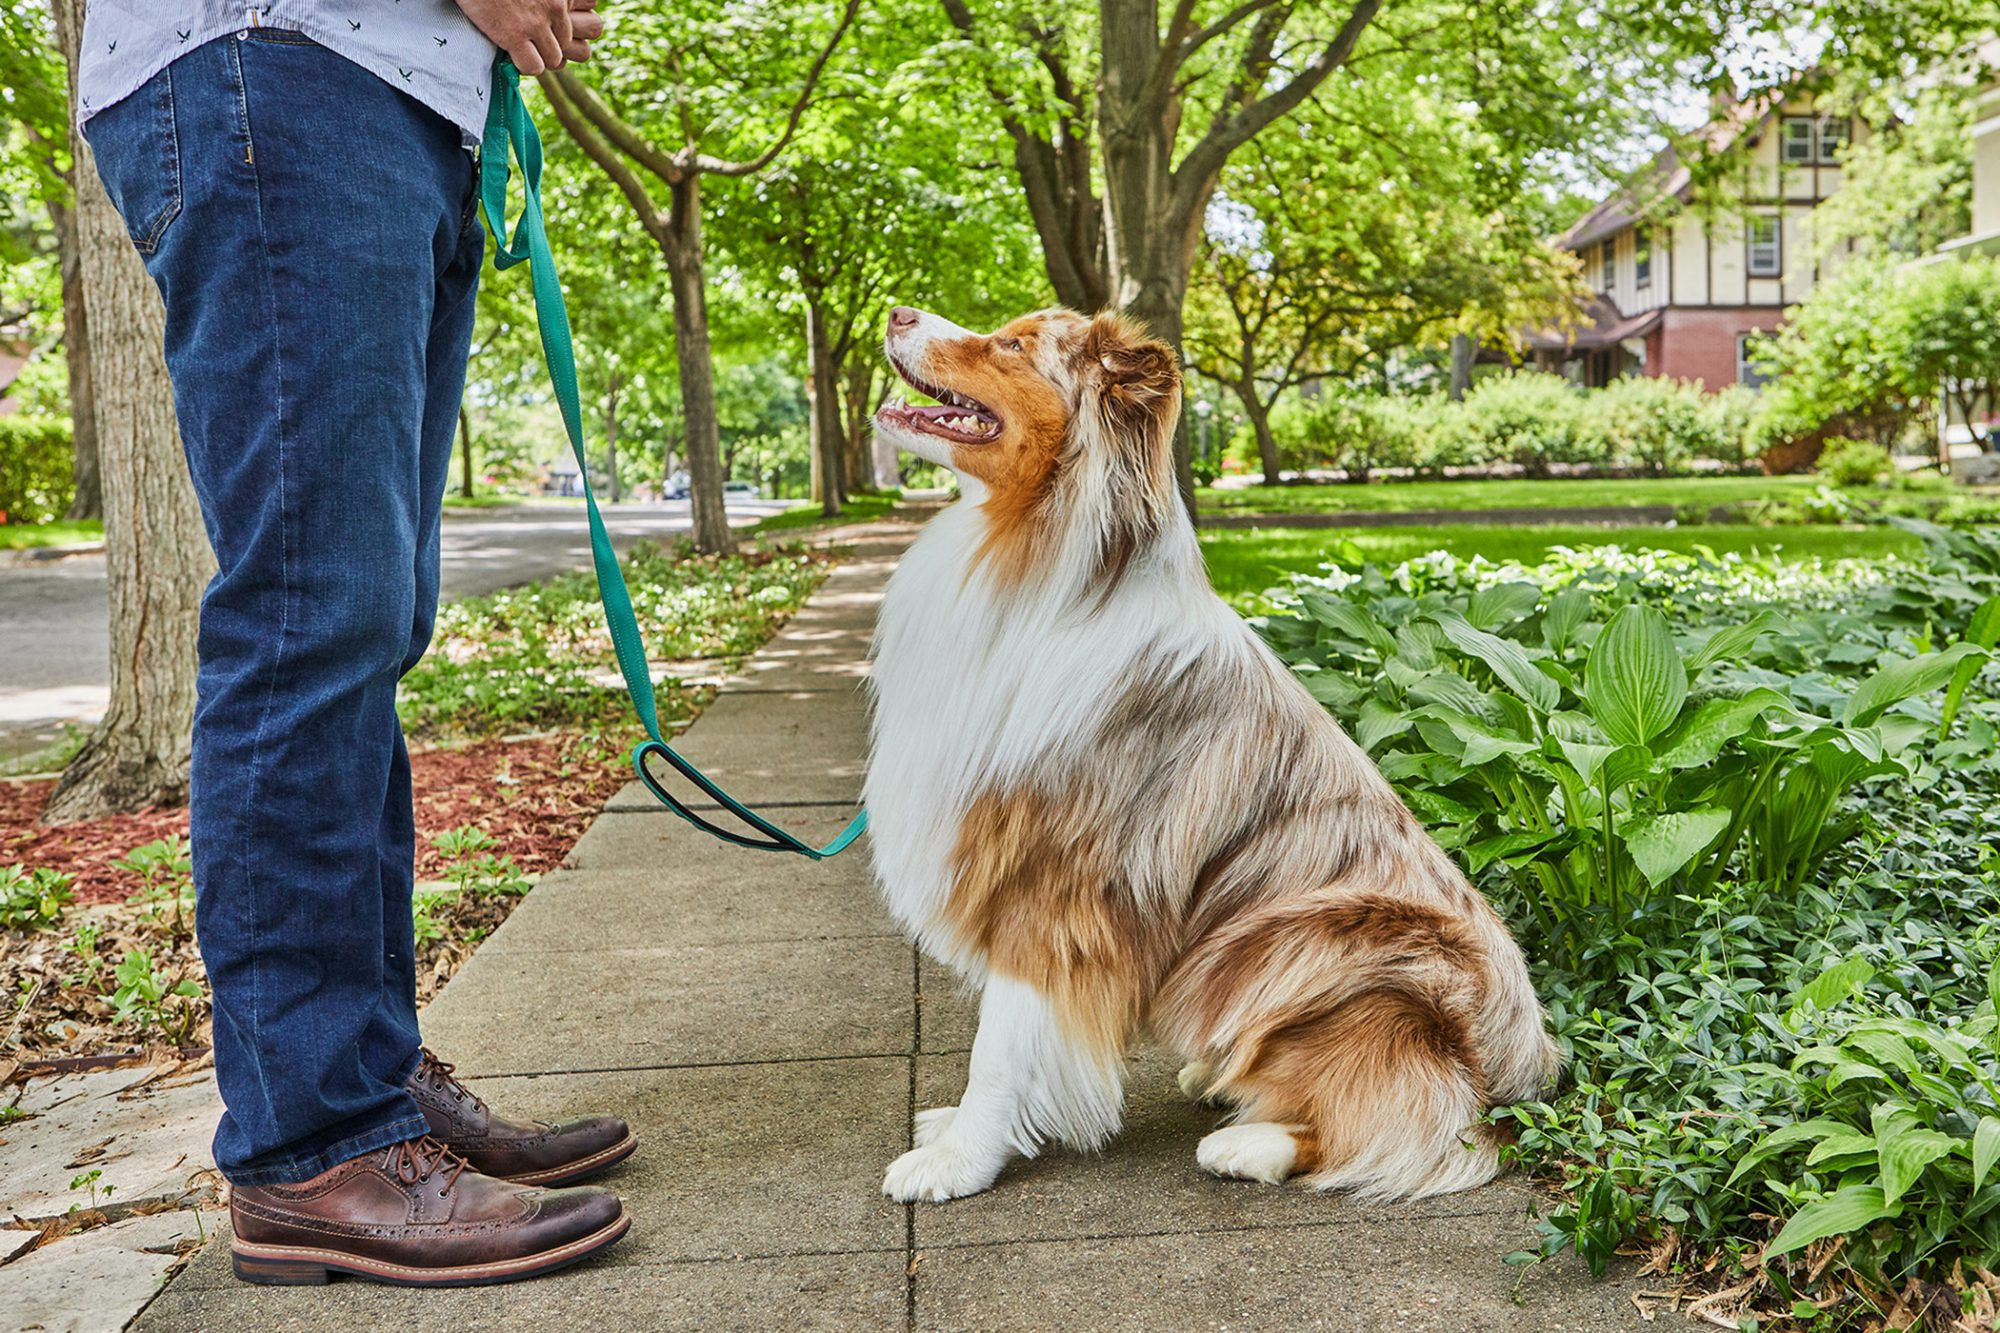 man standing in front of dog